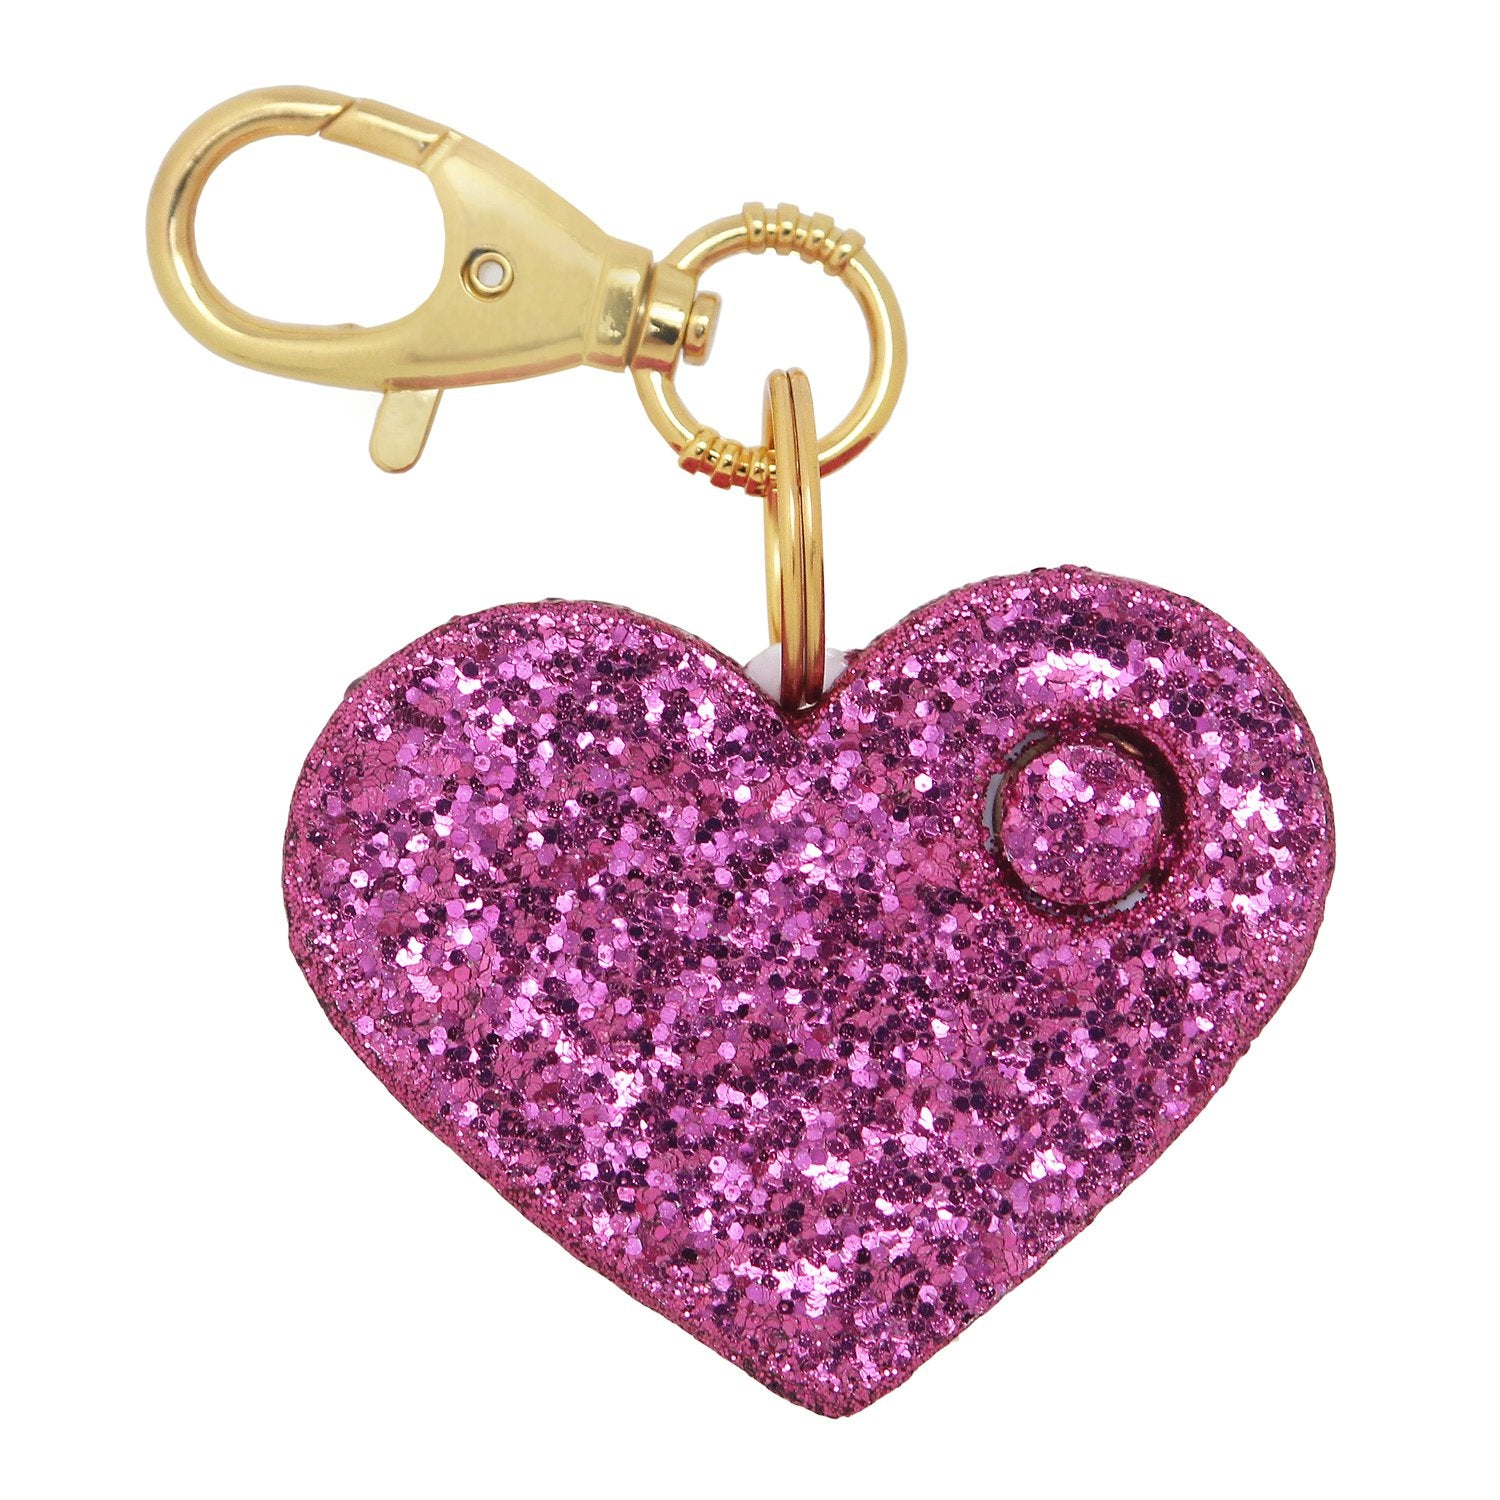 Personal Security Alarm - Glitter Heart (Pink FRONT)